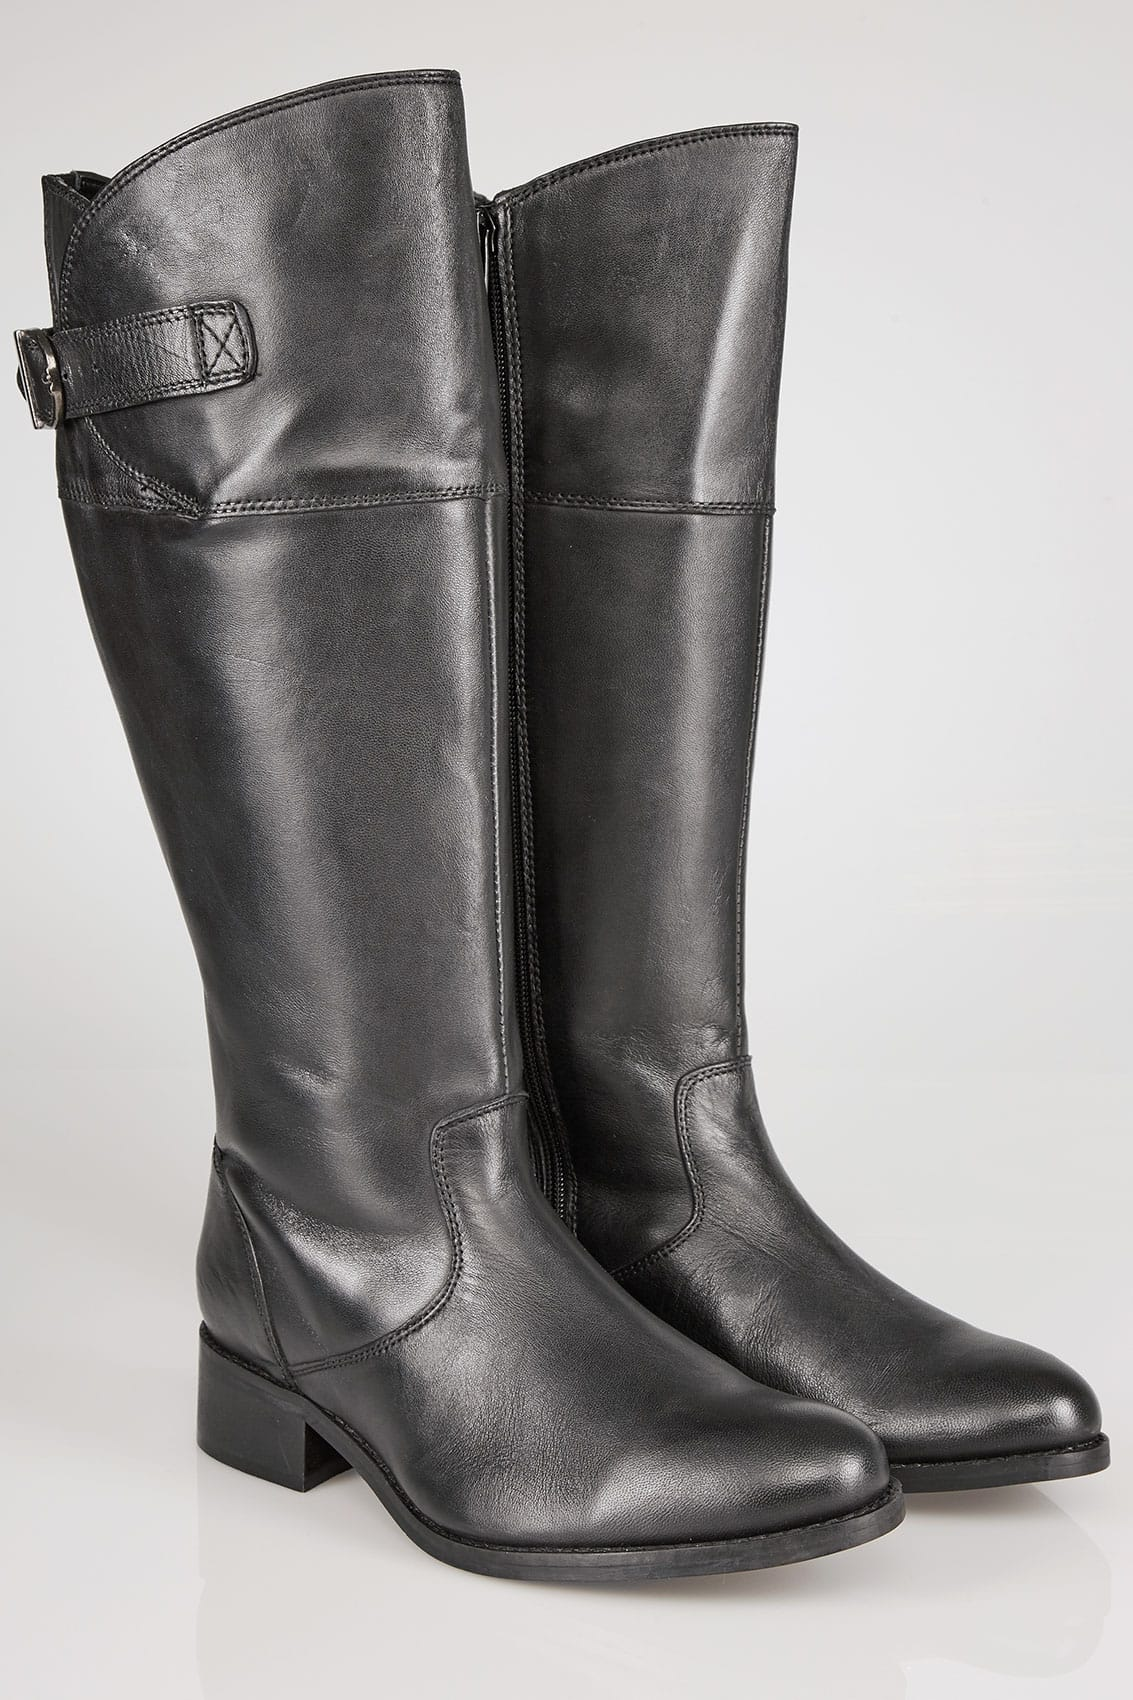 Black Knee High Leather Riding Boots With Elasticated